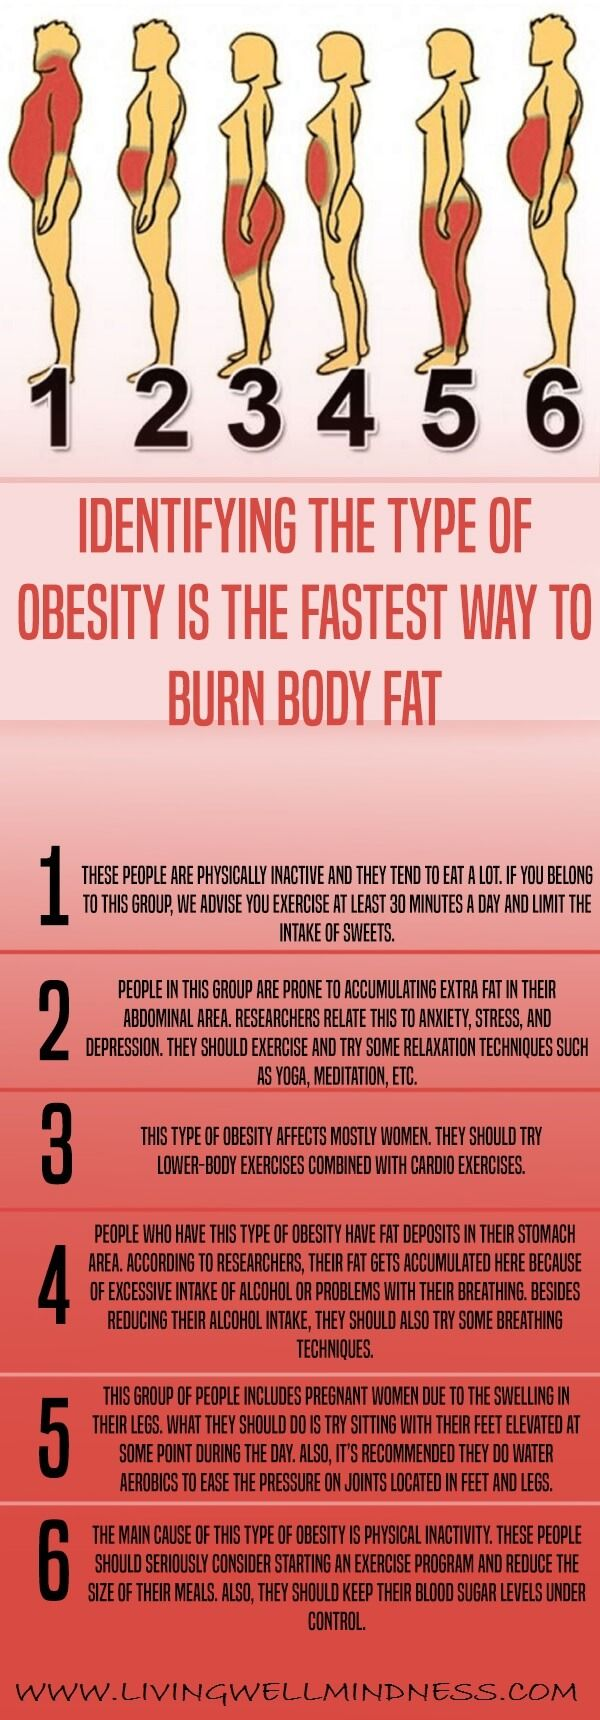 You probably know someone who's overweight or obese, as obesity has become a global modern health problem.